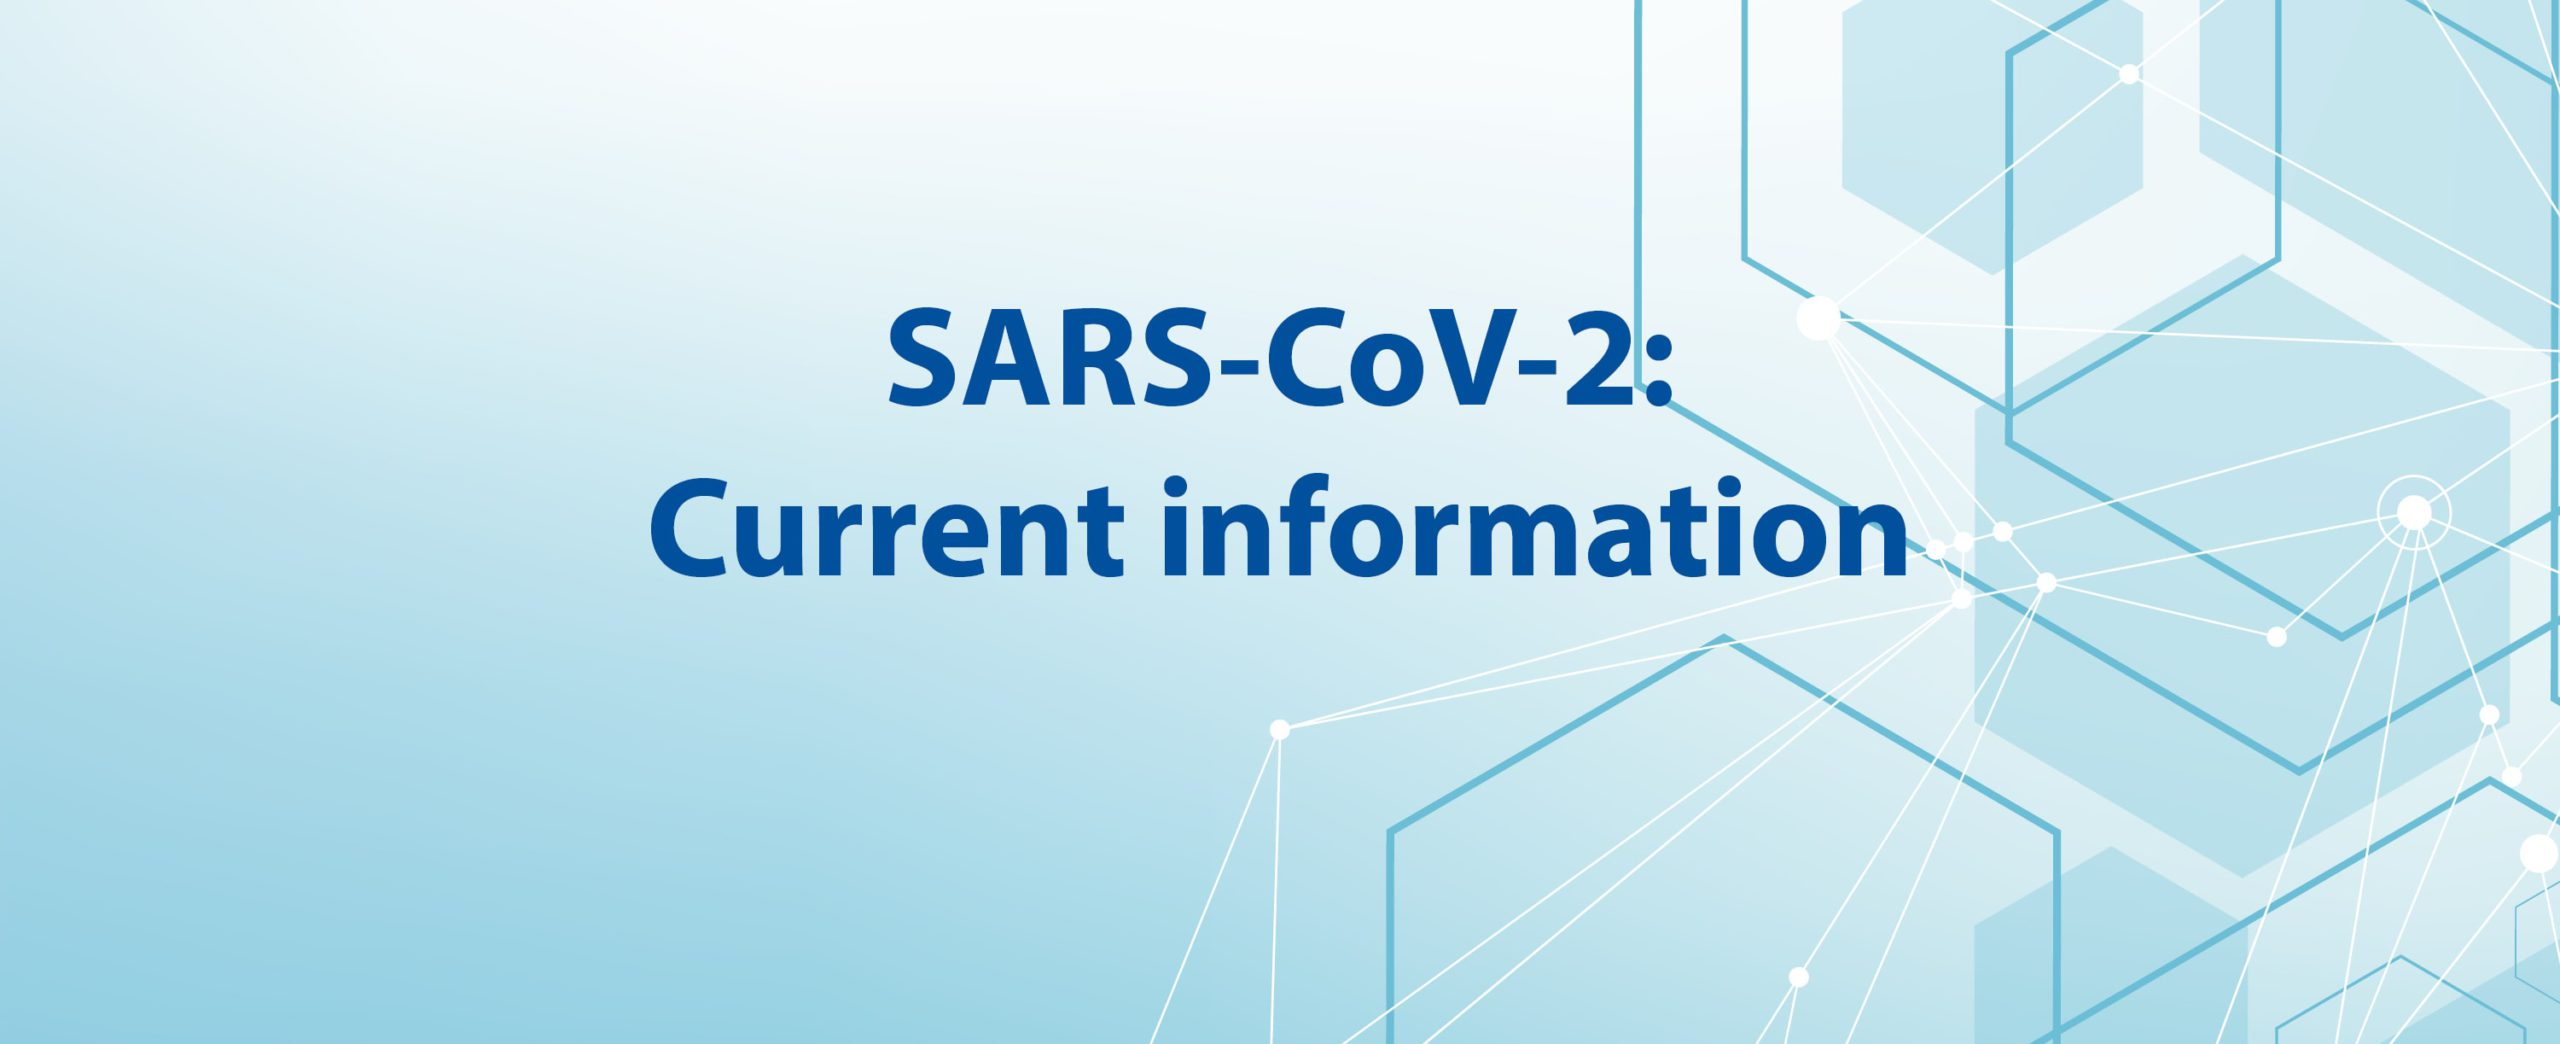 SARS-CoV-2: statement on the Current informaton